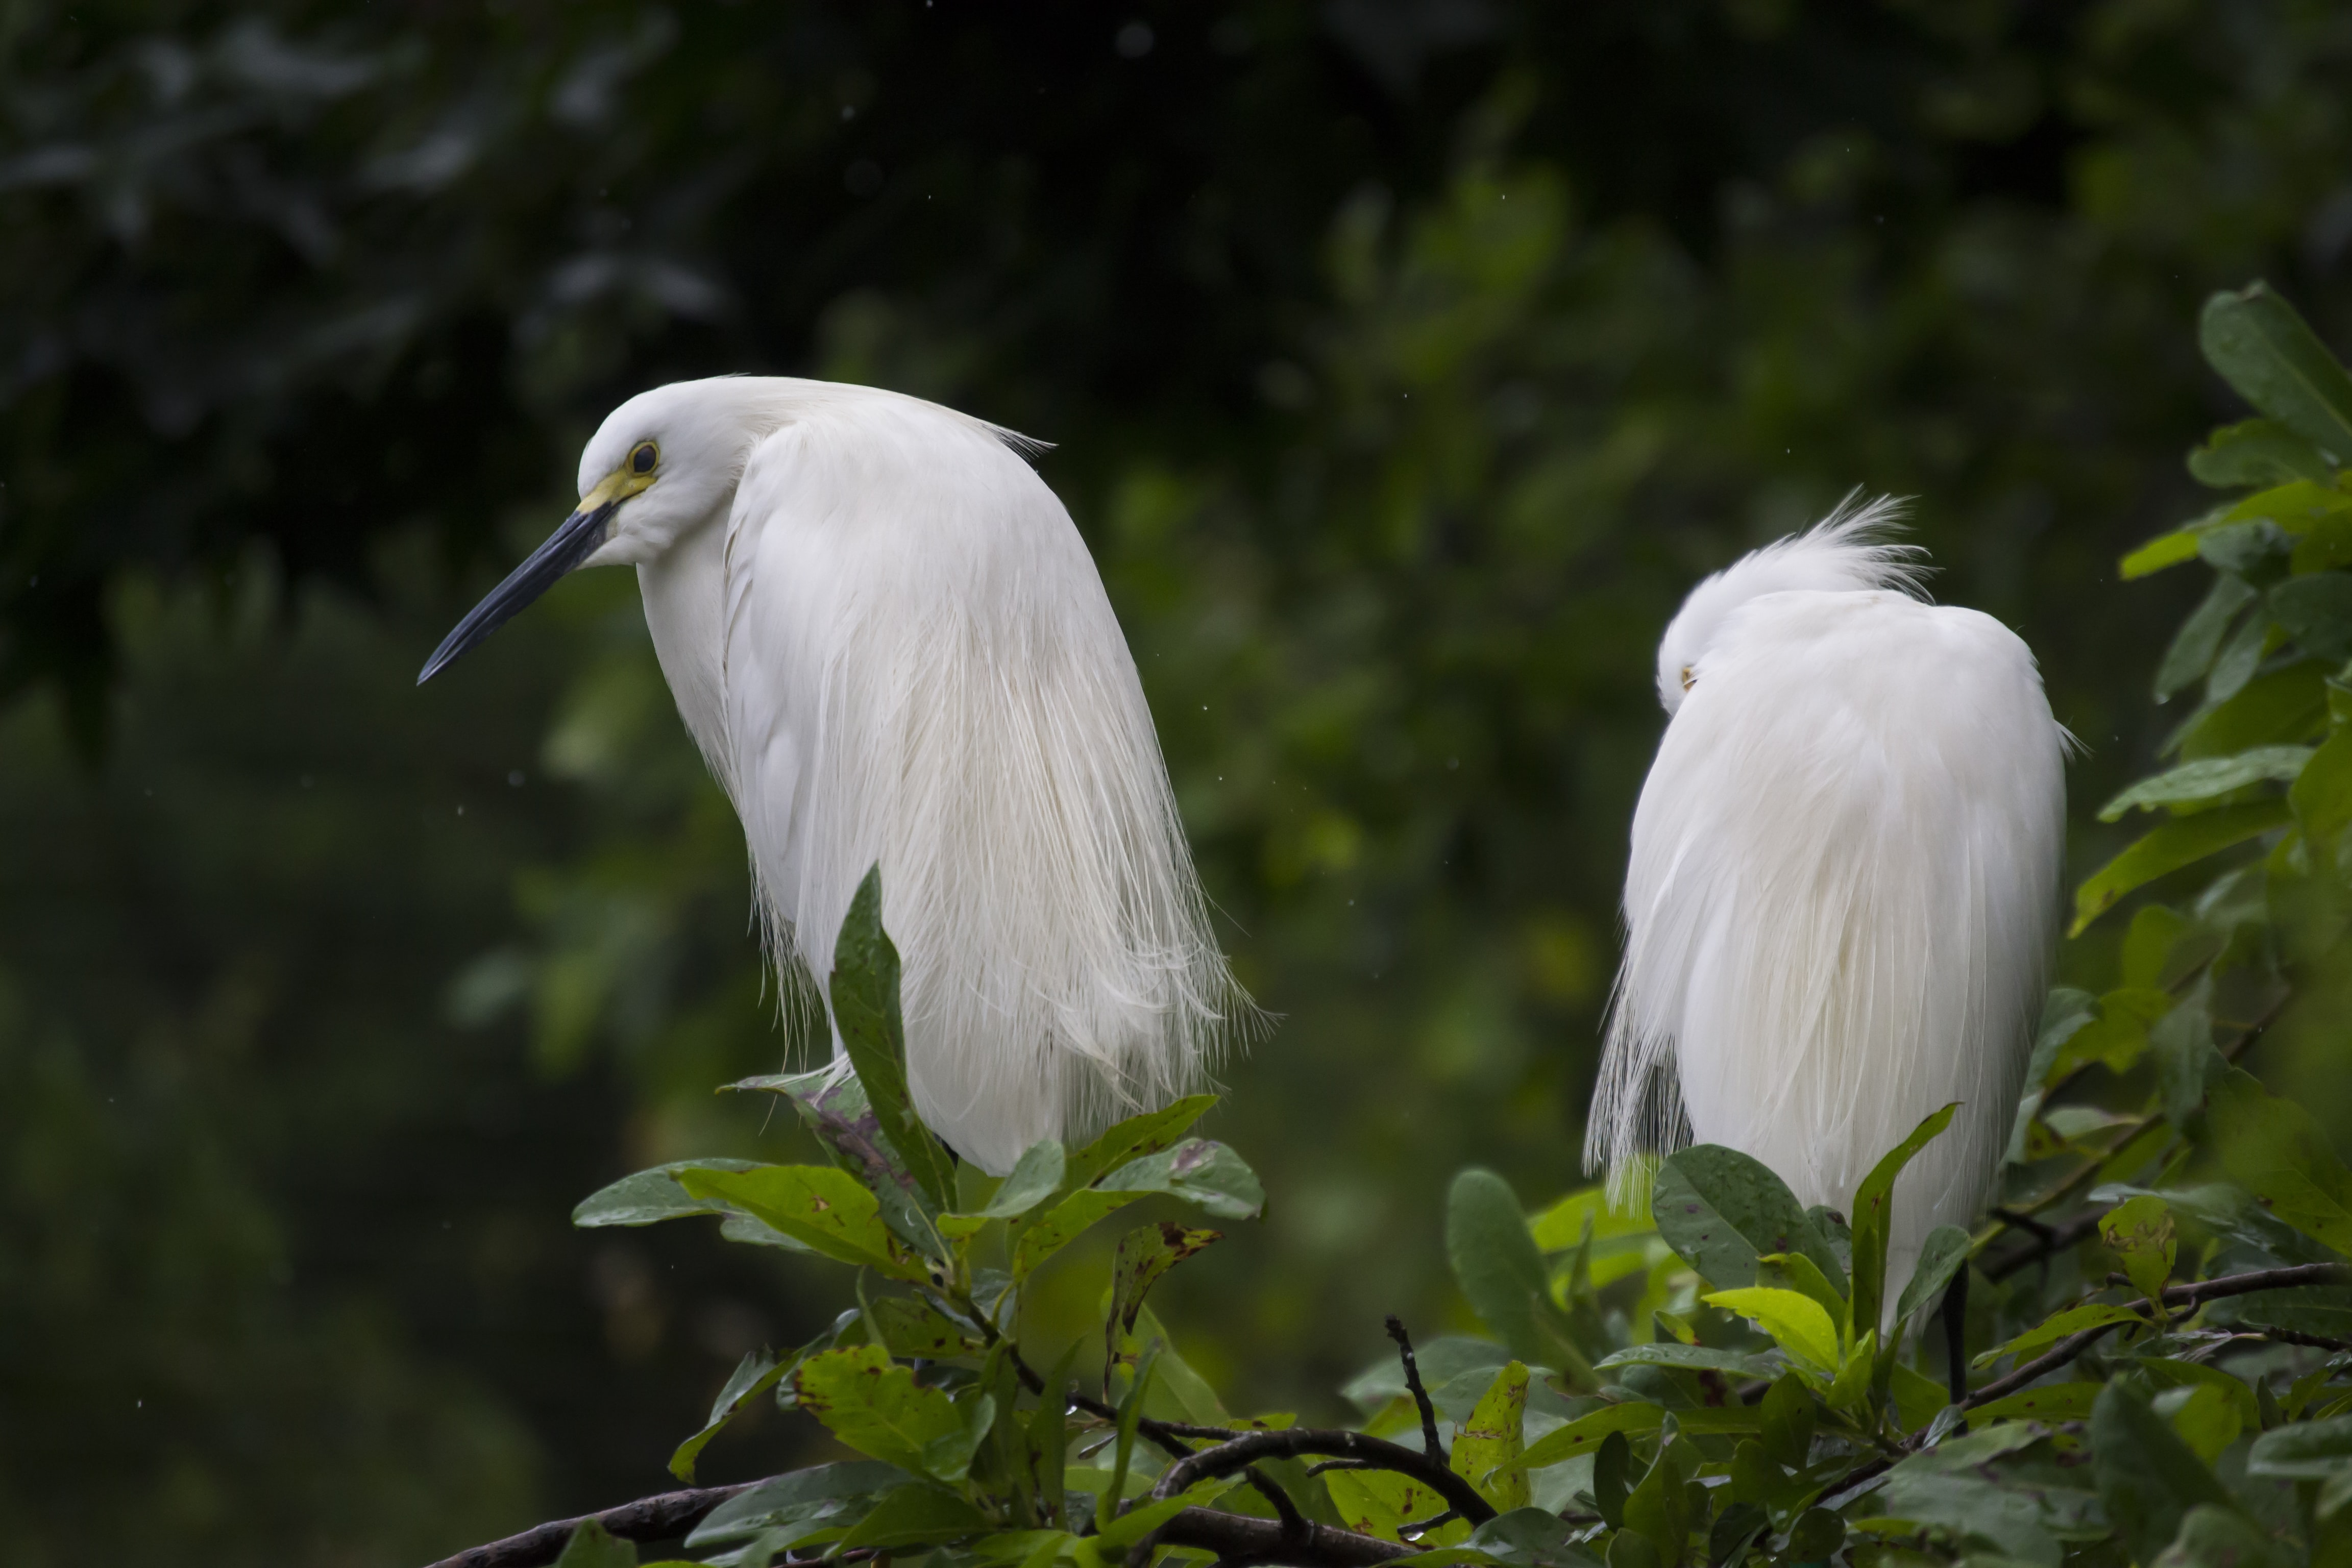 two white long beak birds